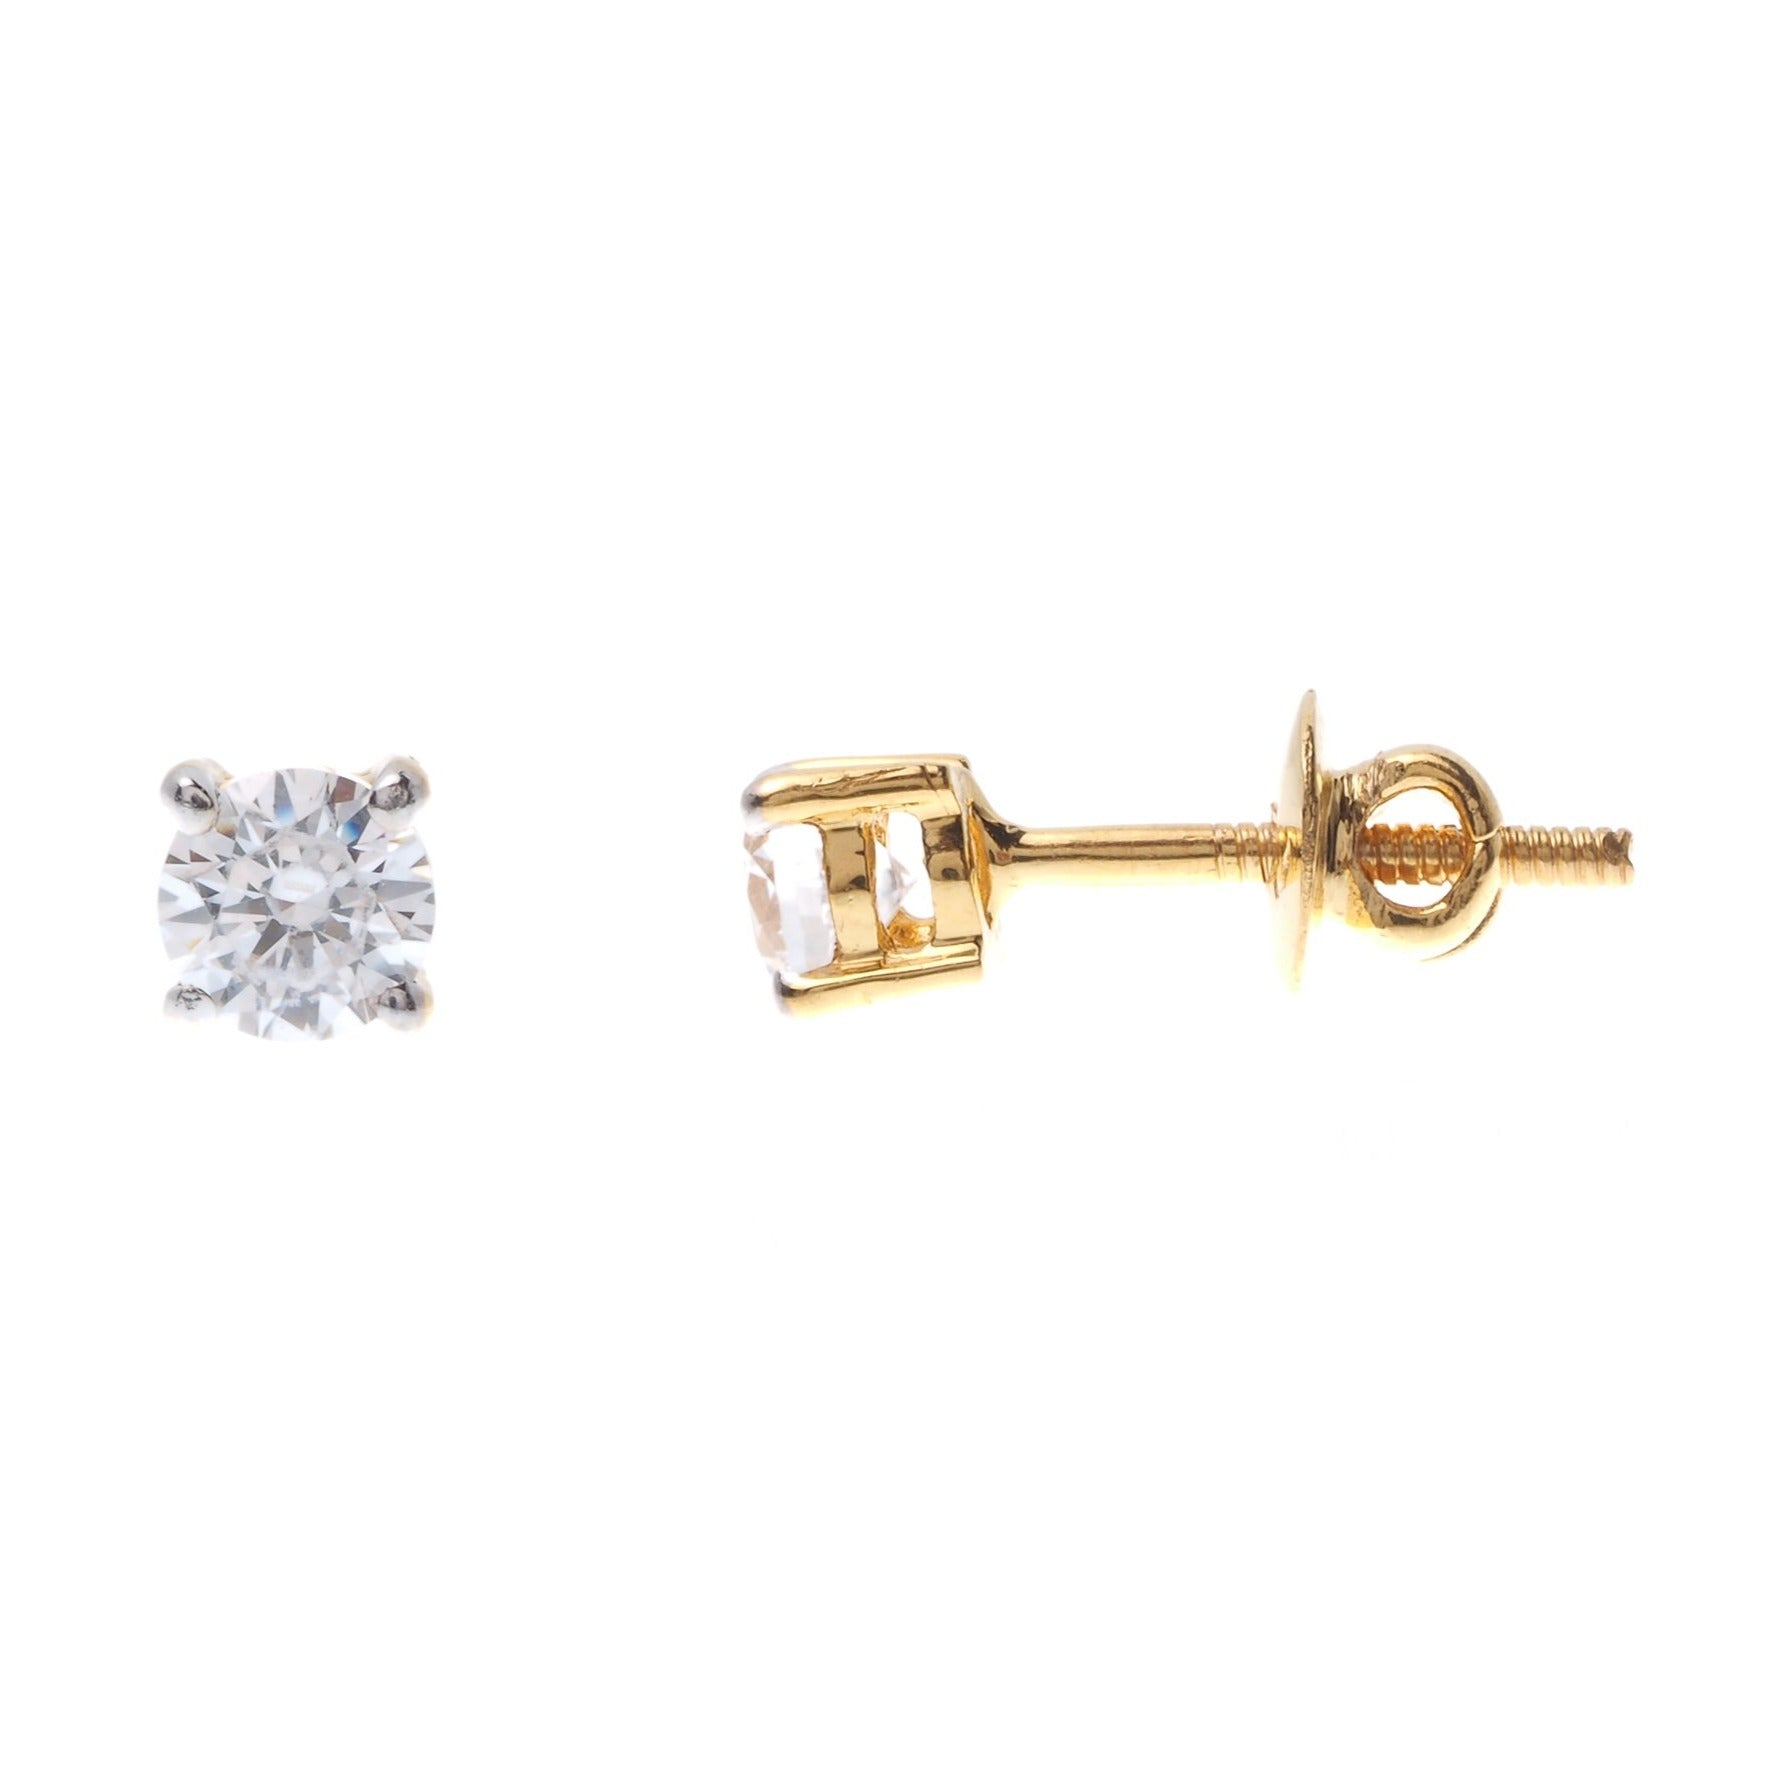 22ct Gold Swarovski Zirconia Stud Earrings (1.93g) ET12132